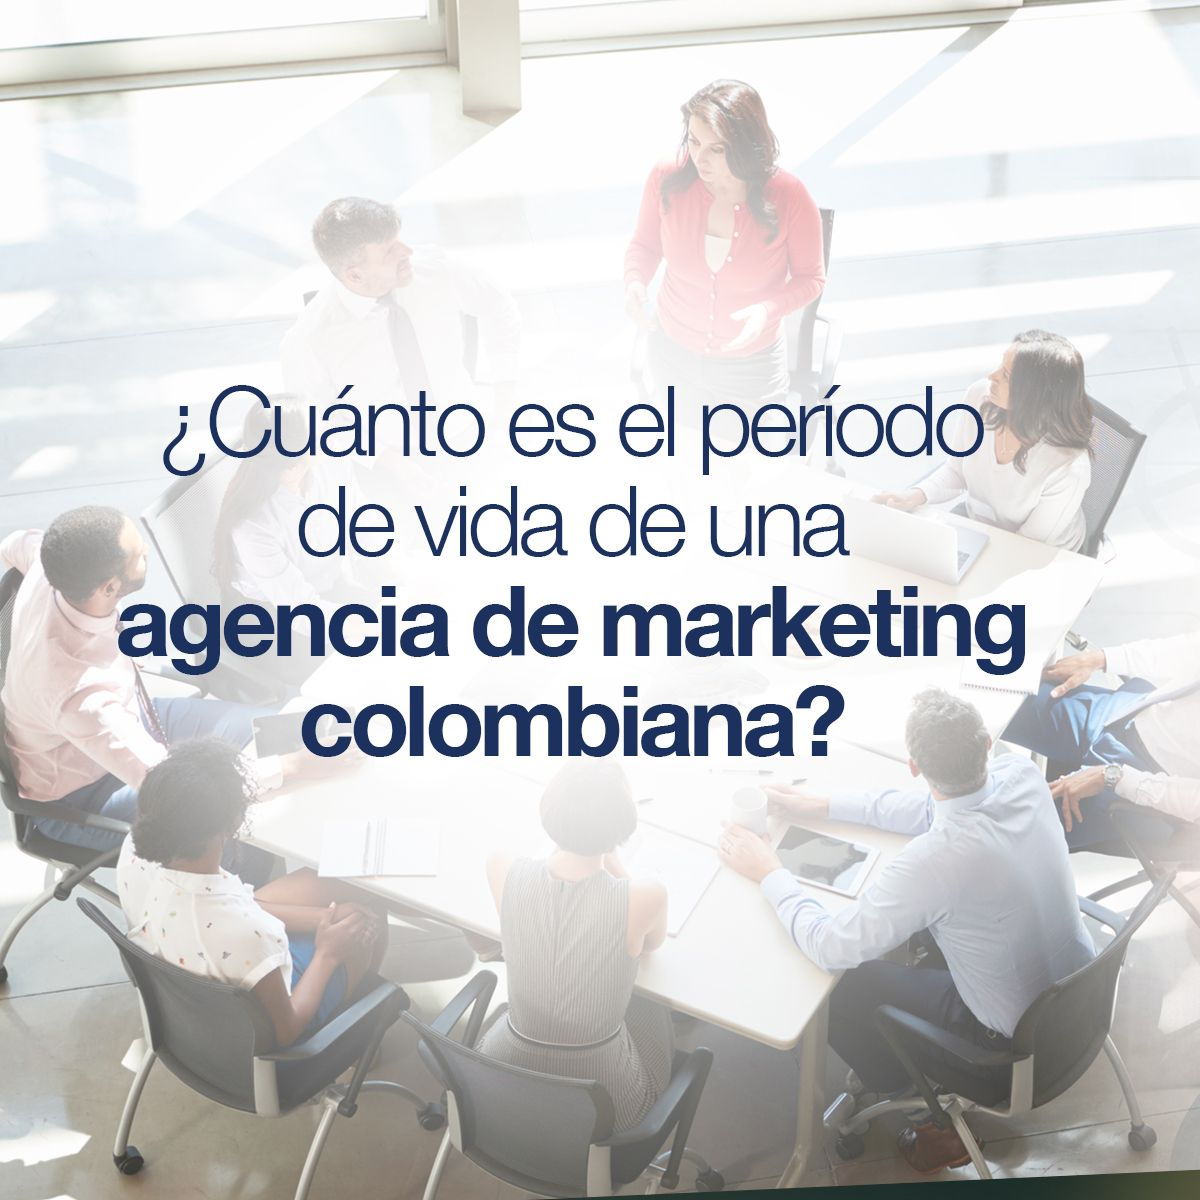 ¿Cuánto es el período de vida de una agencia de marketing?